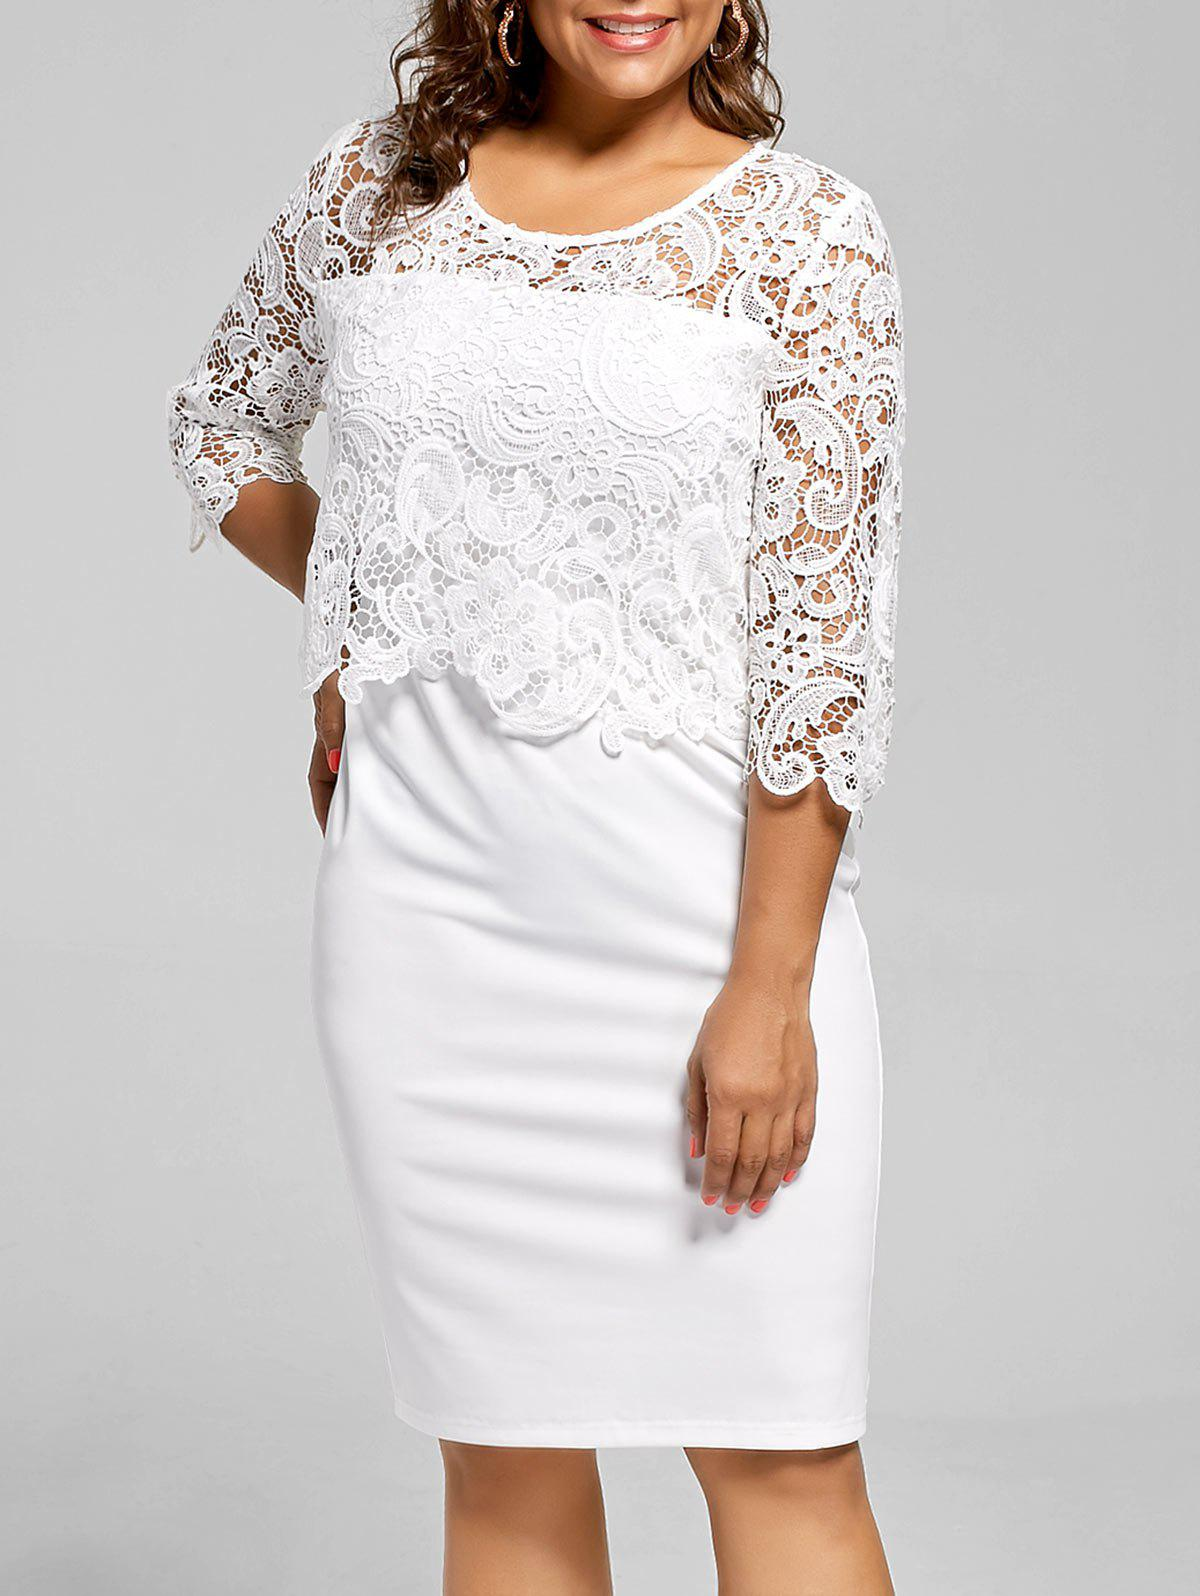 39% OFF] Lace Panel Knee Length Plus Size Bodycon Dress | Rosegal